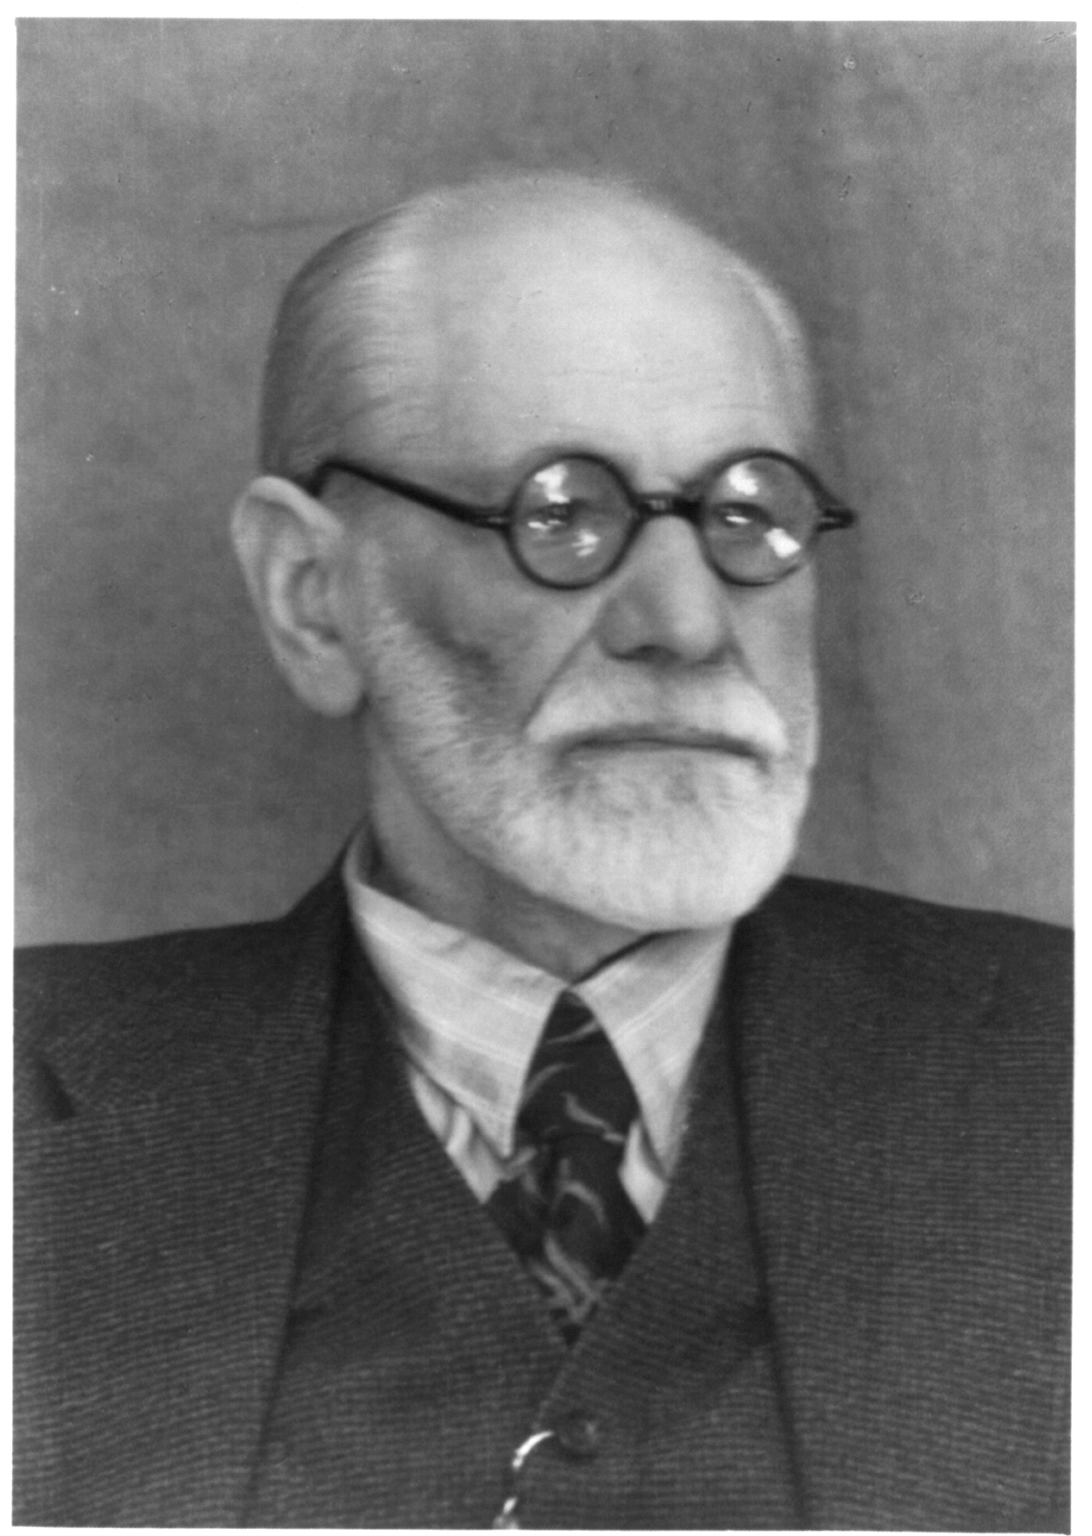 sigmund freud essays psychoanalysis